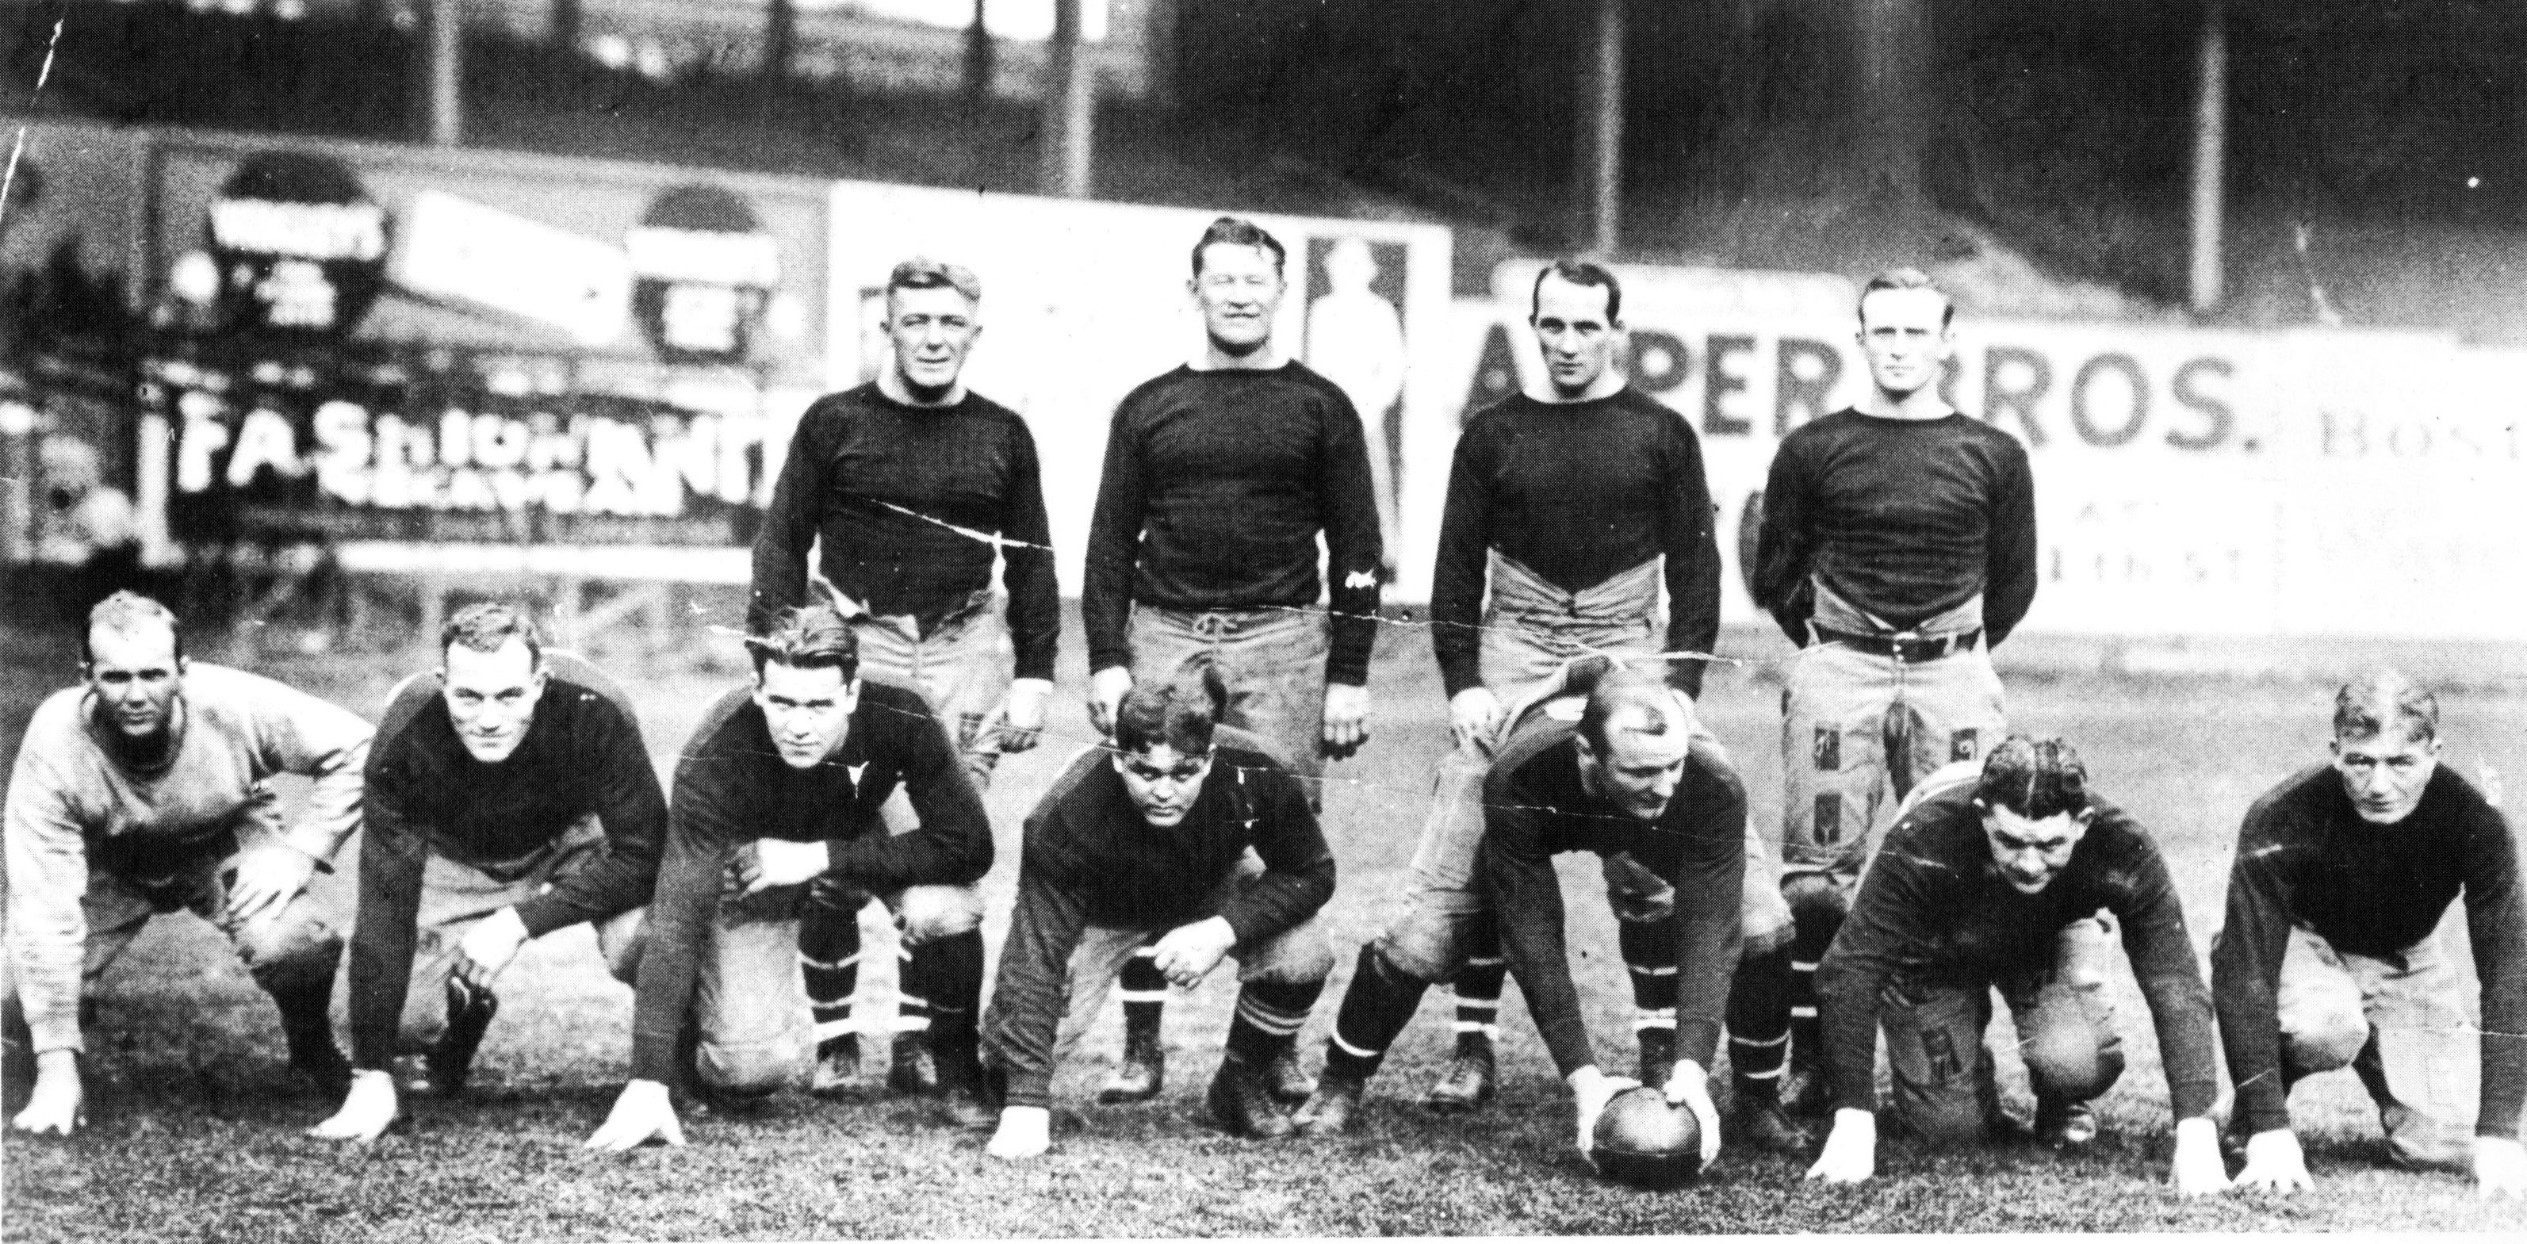 1925 New York Giants, back row, second from left, Jim Thorpe